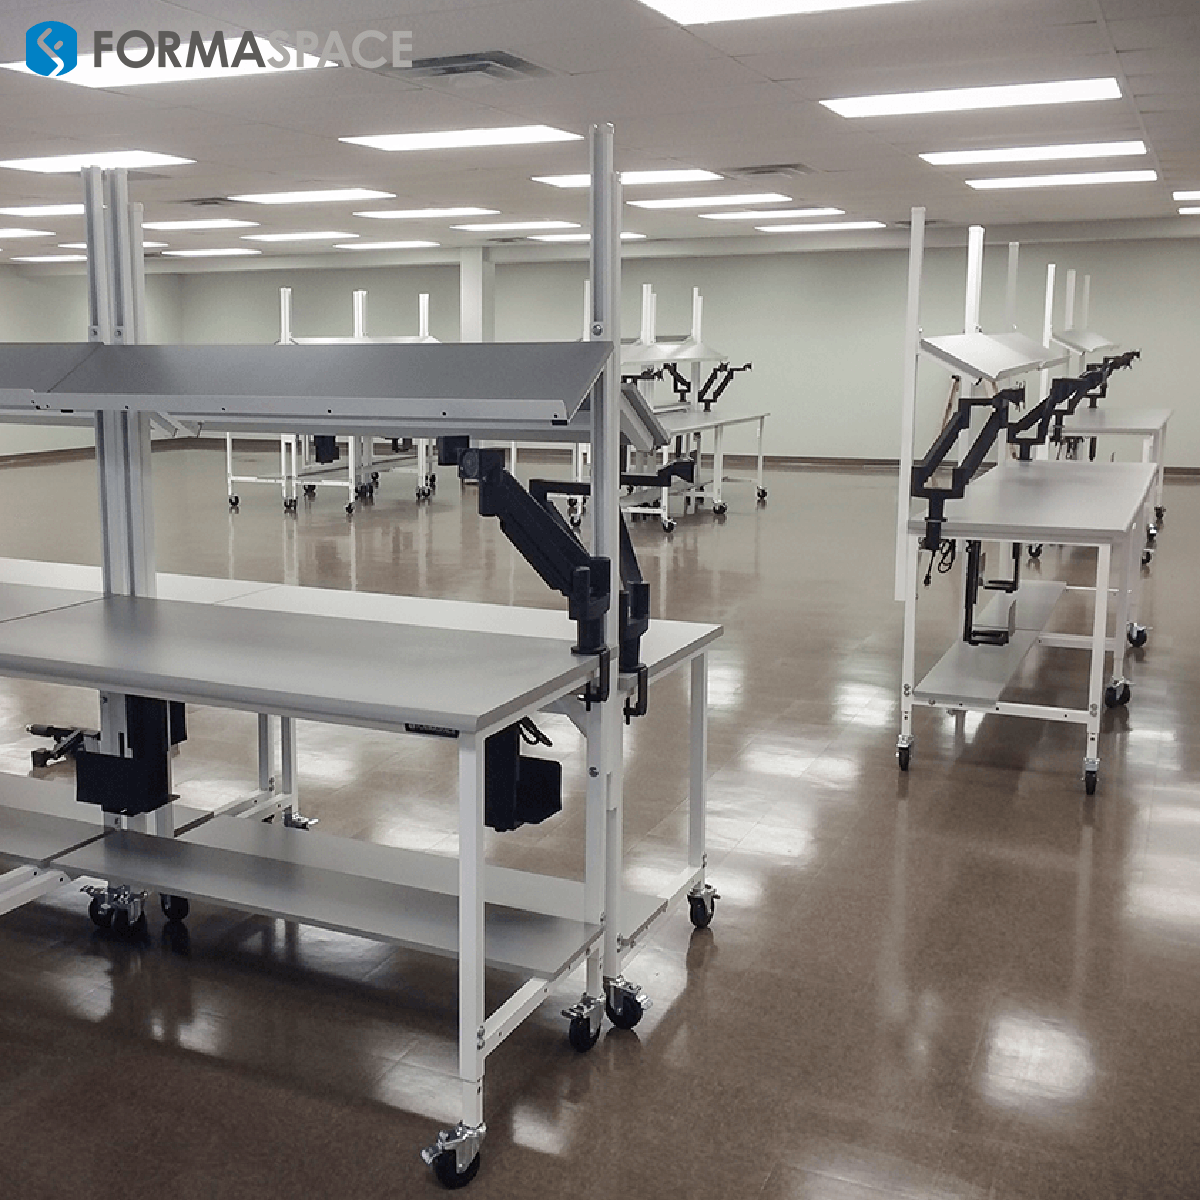 Pharmacy Order Filling Workbench with Upper & Lower Shelves for a Pharmaceutical Company